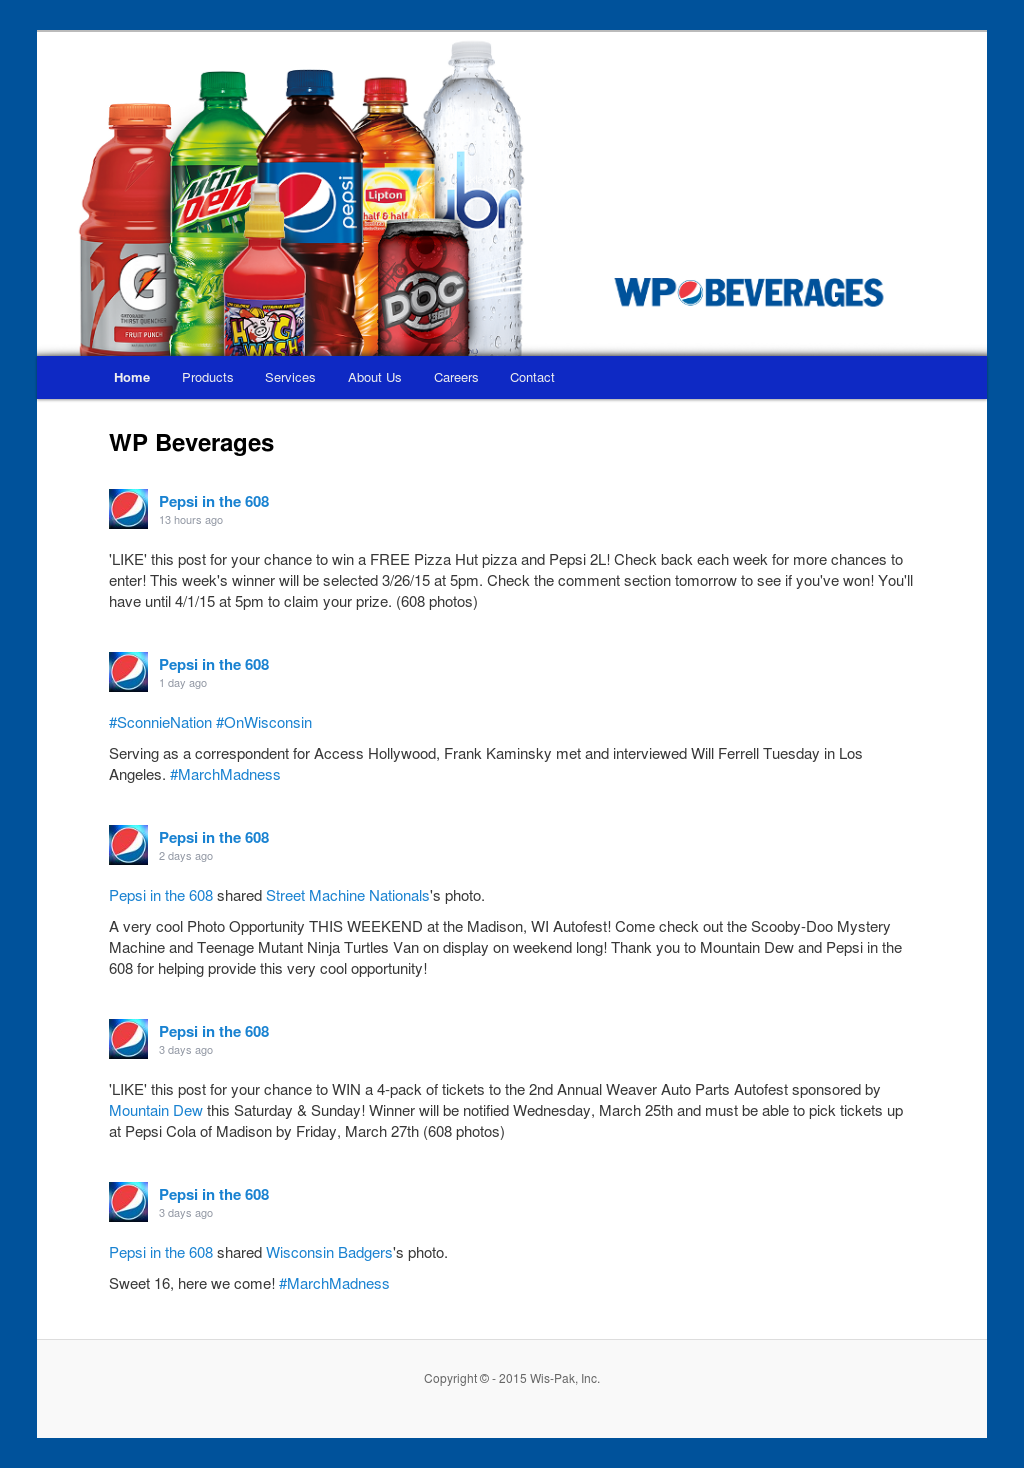 Wp Beverages Competitors, Revenue and Employees - Owler Company Profile